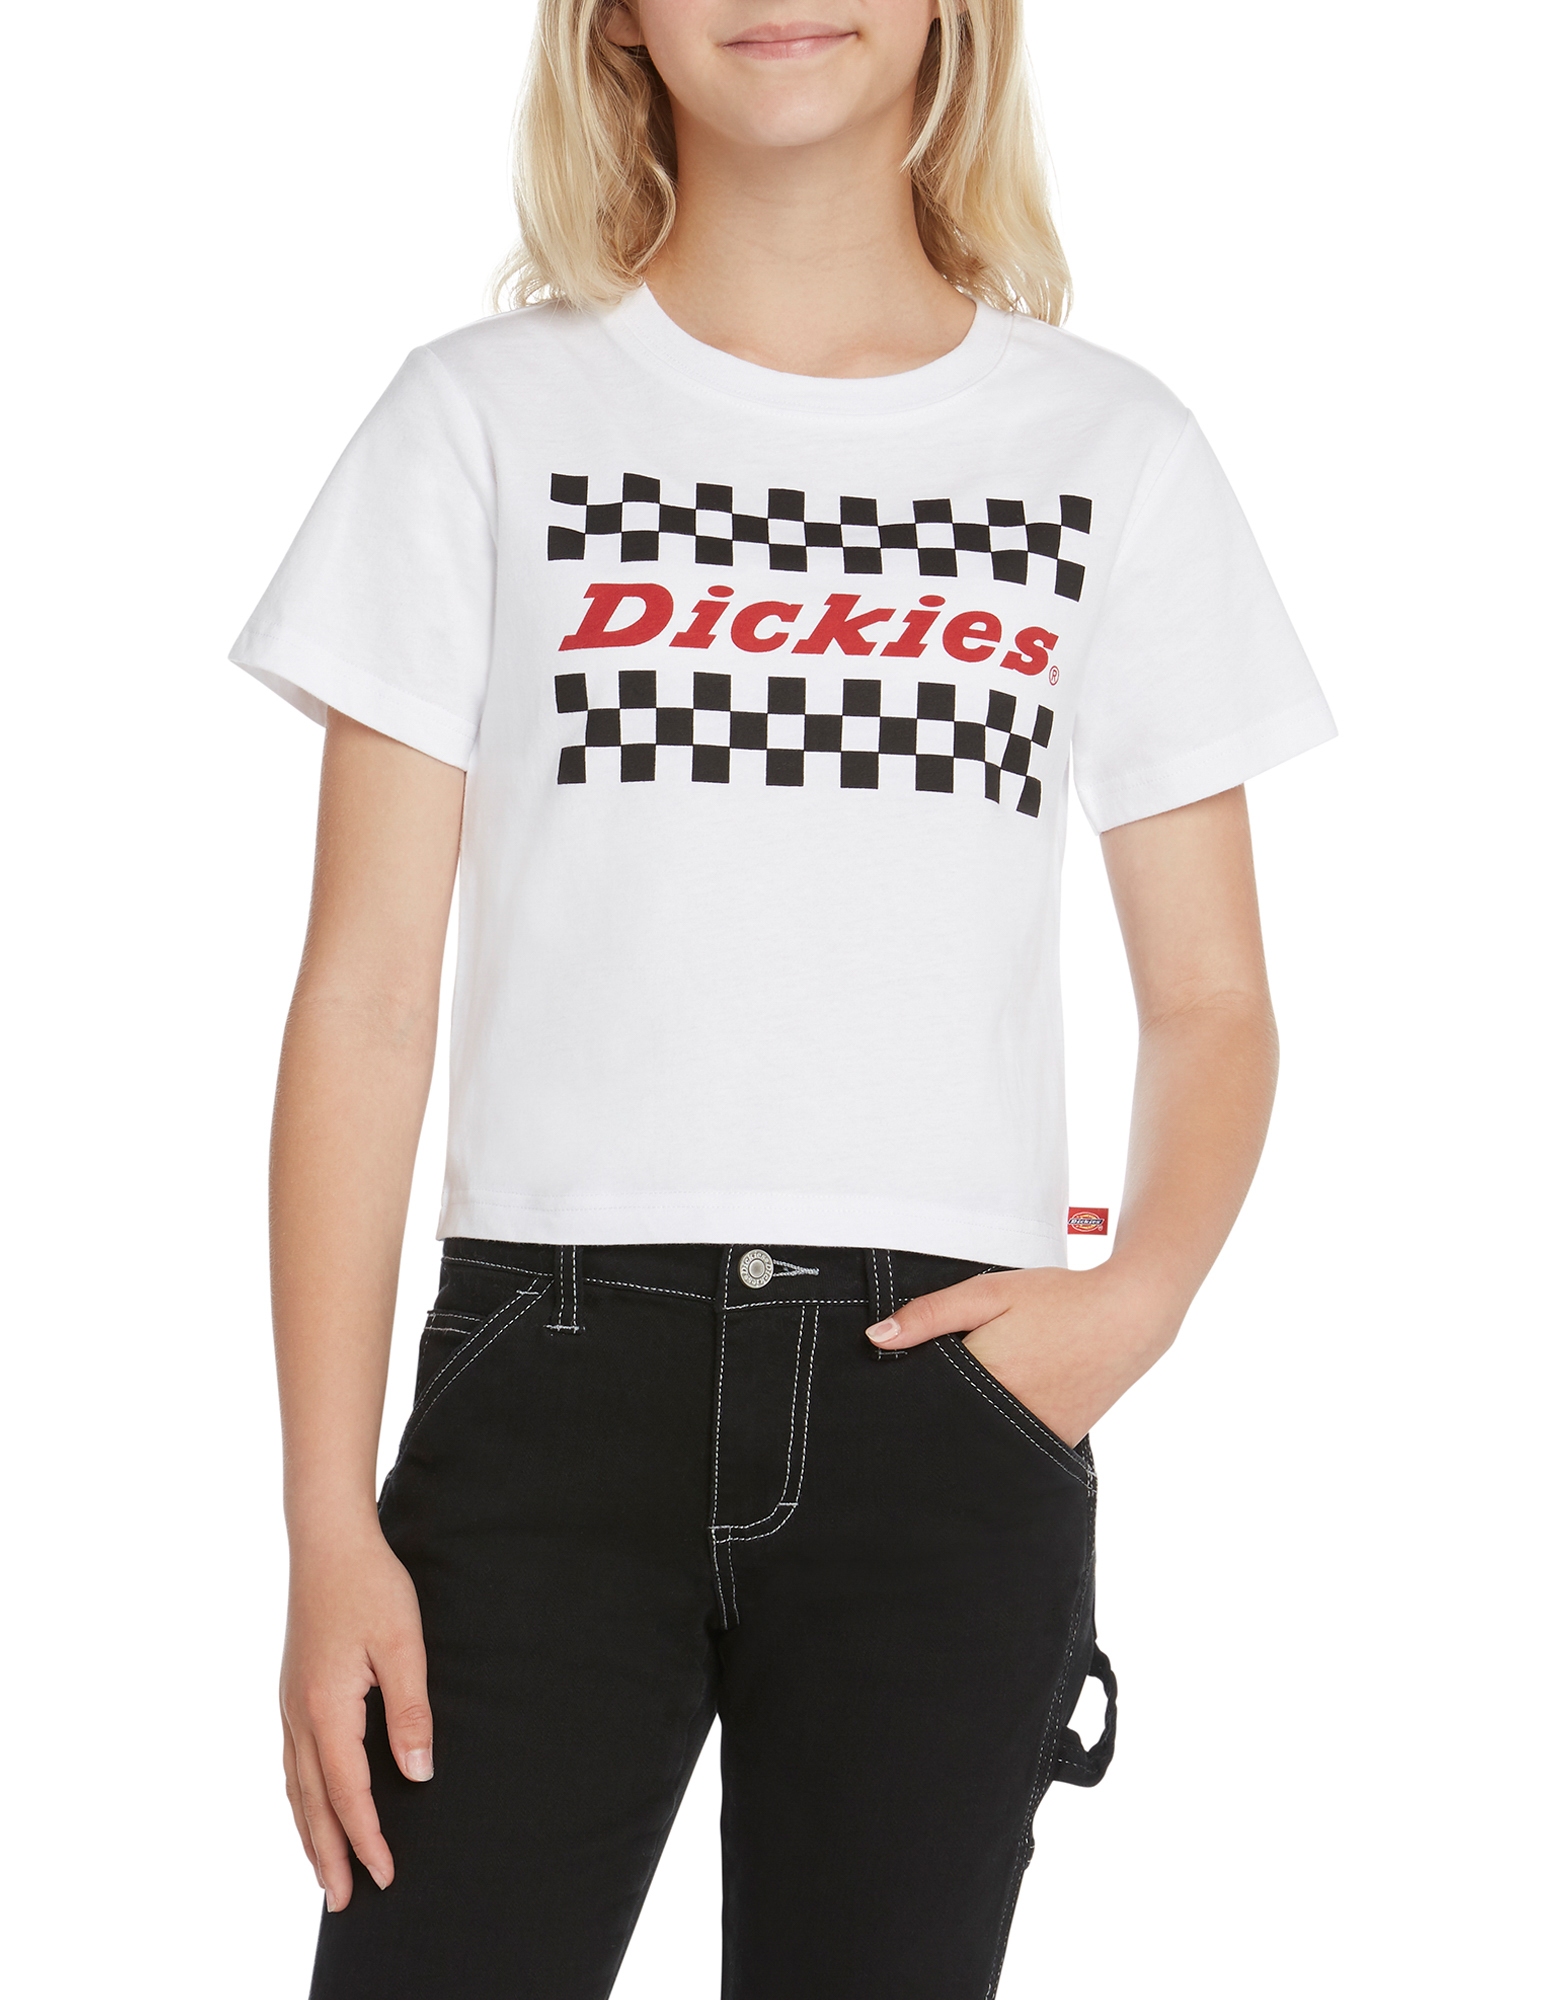 Girls' Short Sleeve Cropped Checkered T-Shirt - White (WH)